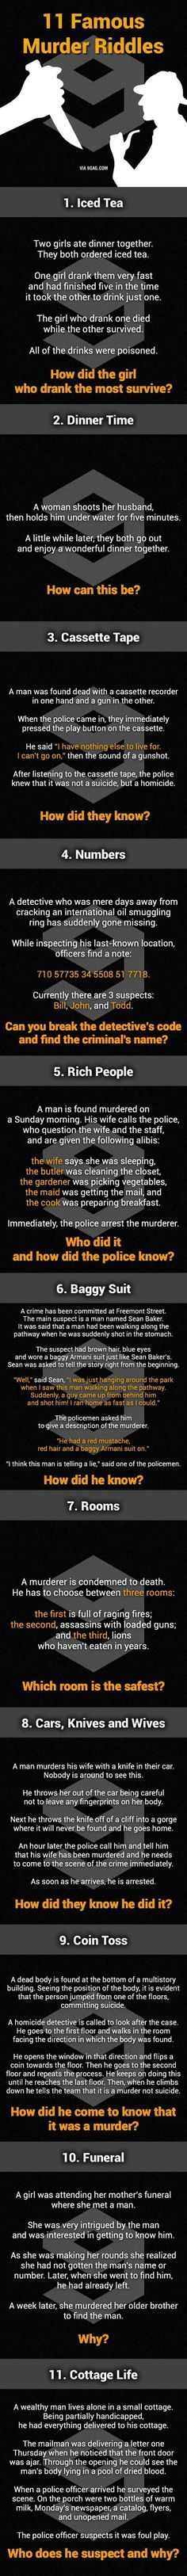 """11 Murder Mystery Riddles. Can You Solve Them All?  1. The poison was in the ice. 2. She shot her husband with a camera and then developed the photo. 3. If the man shot himself while he was recording, how did he rewind the cassette tape? 4. Bill is the suspect, if read upside down the numbers read """"Bill is boss. He sells oil."""" 5. There is no mail on Sundays. 6. How can the murderer shoot him in the stomach if he came up behind the man? 7. The room with the lions because they would have now…"""